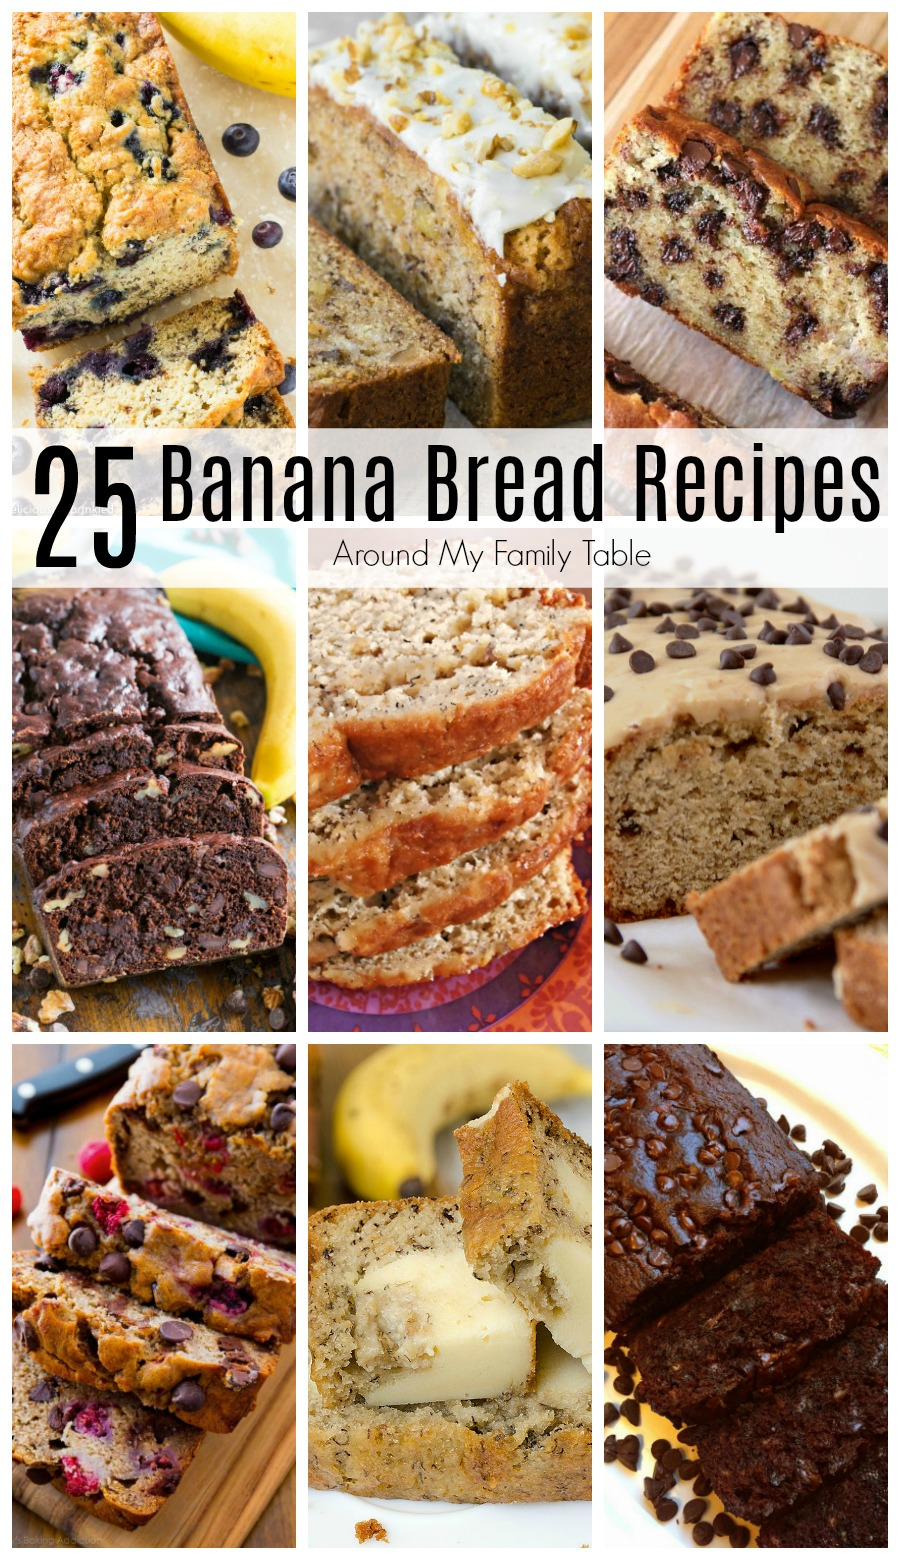 I've found all the Best Banana Bread Recipes and put them in one place!  From the simplest to the most decadent...you'll love them all! #bananabread #quickbreads